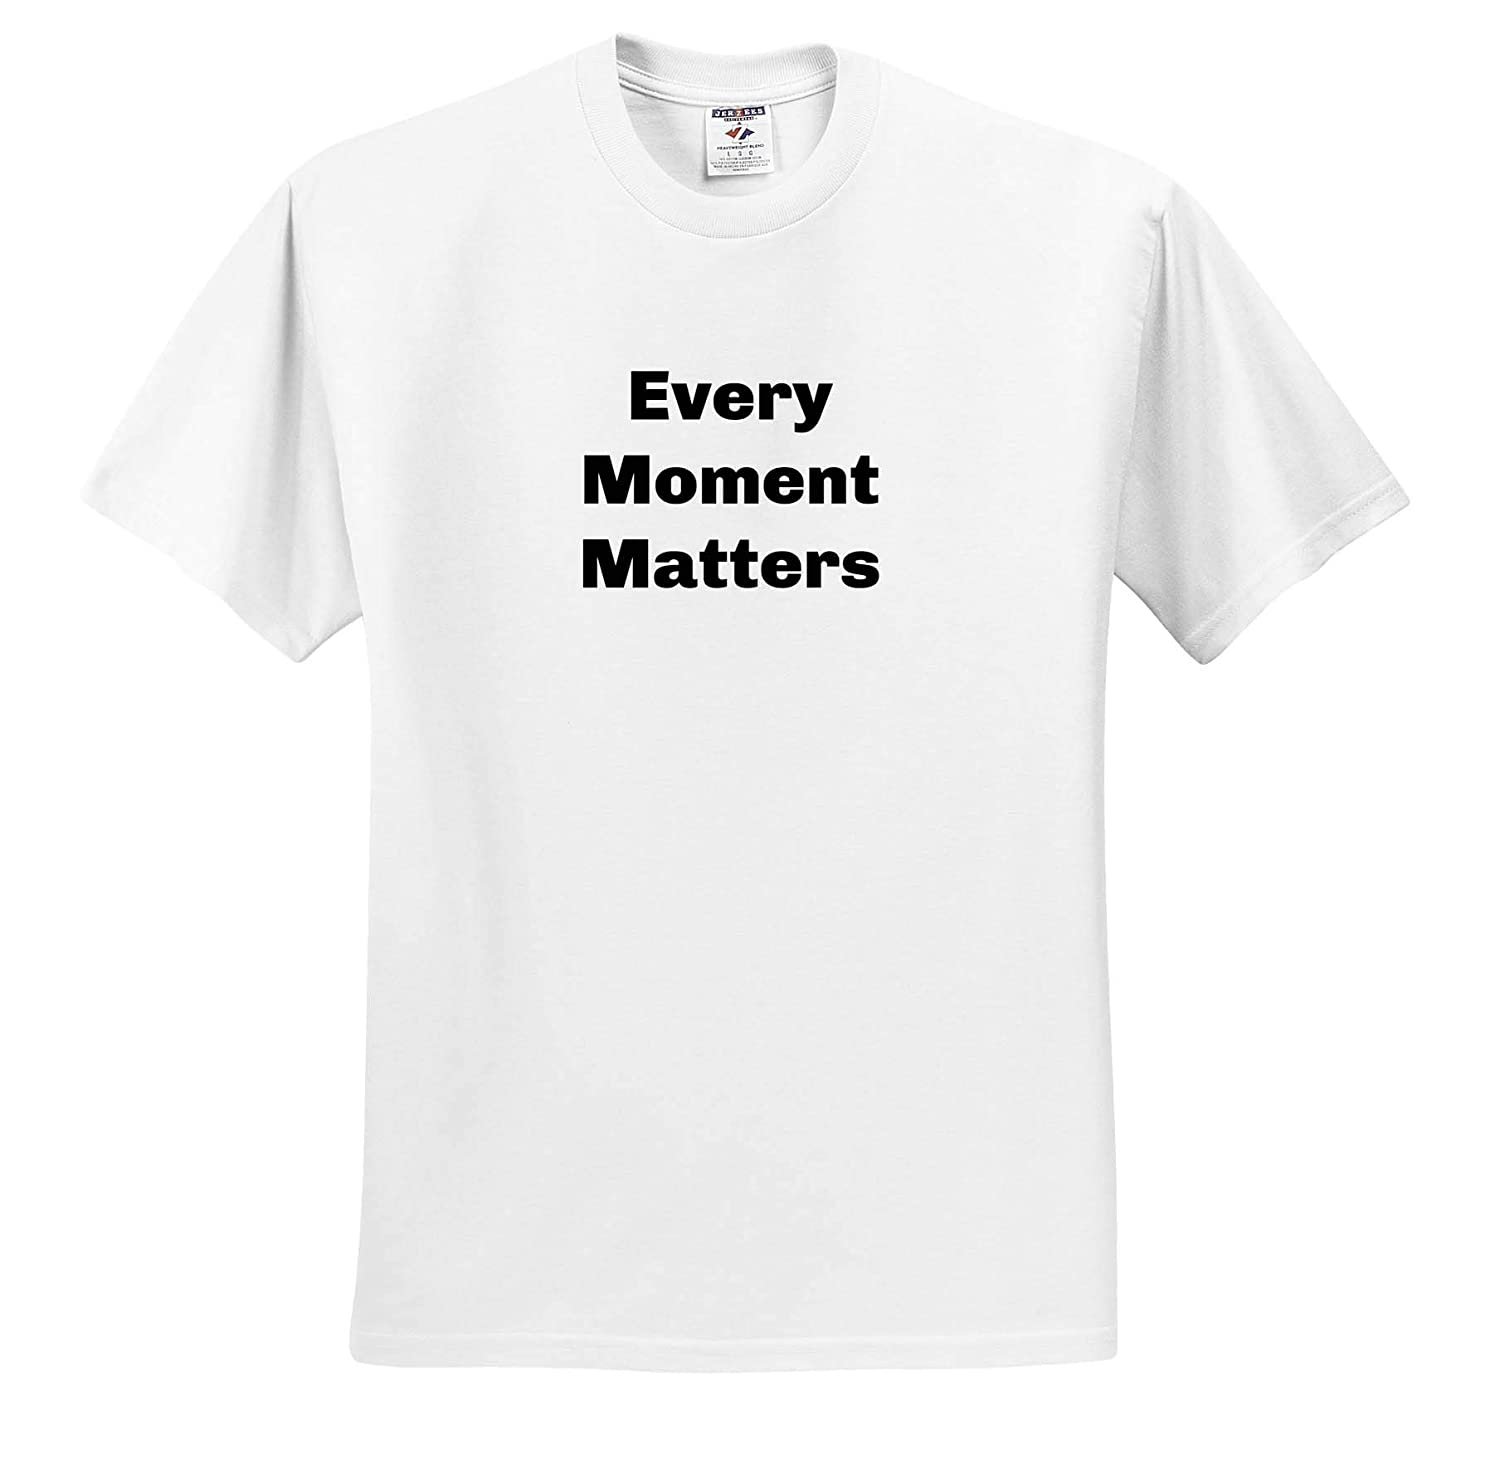 3dRose Carrie Quote Image ts/_321036 Adult T-Shirt XL Image of Quote Every Moment Matters